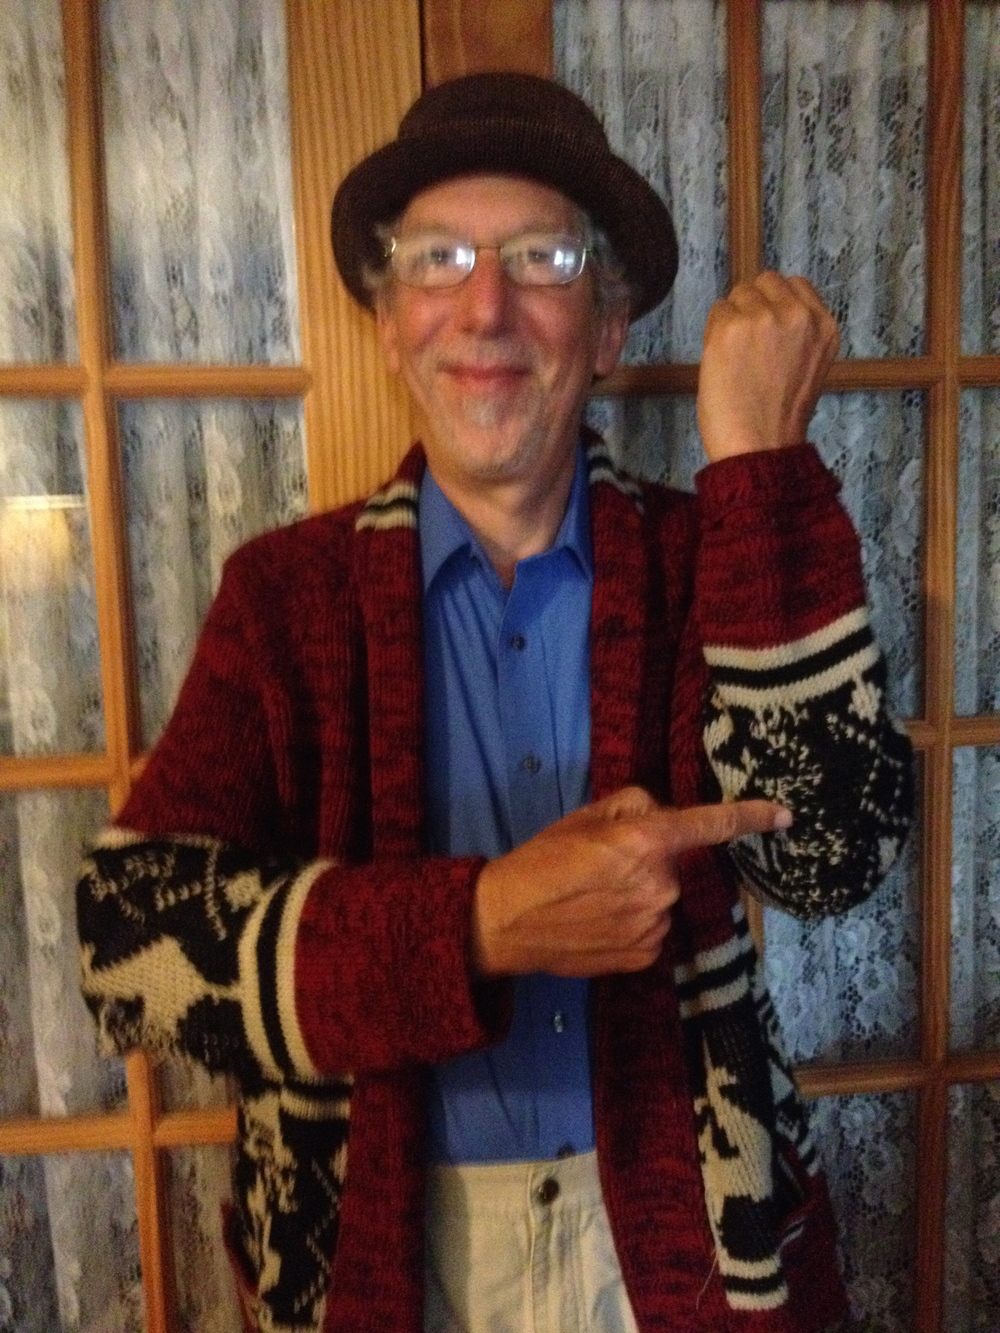 Jerry and his darned sweater!